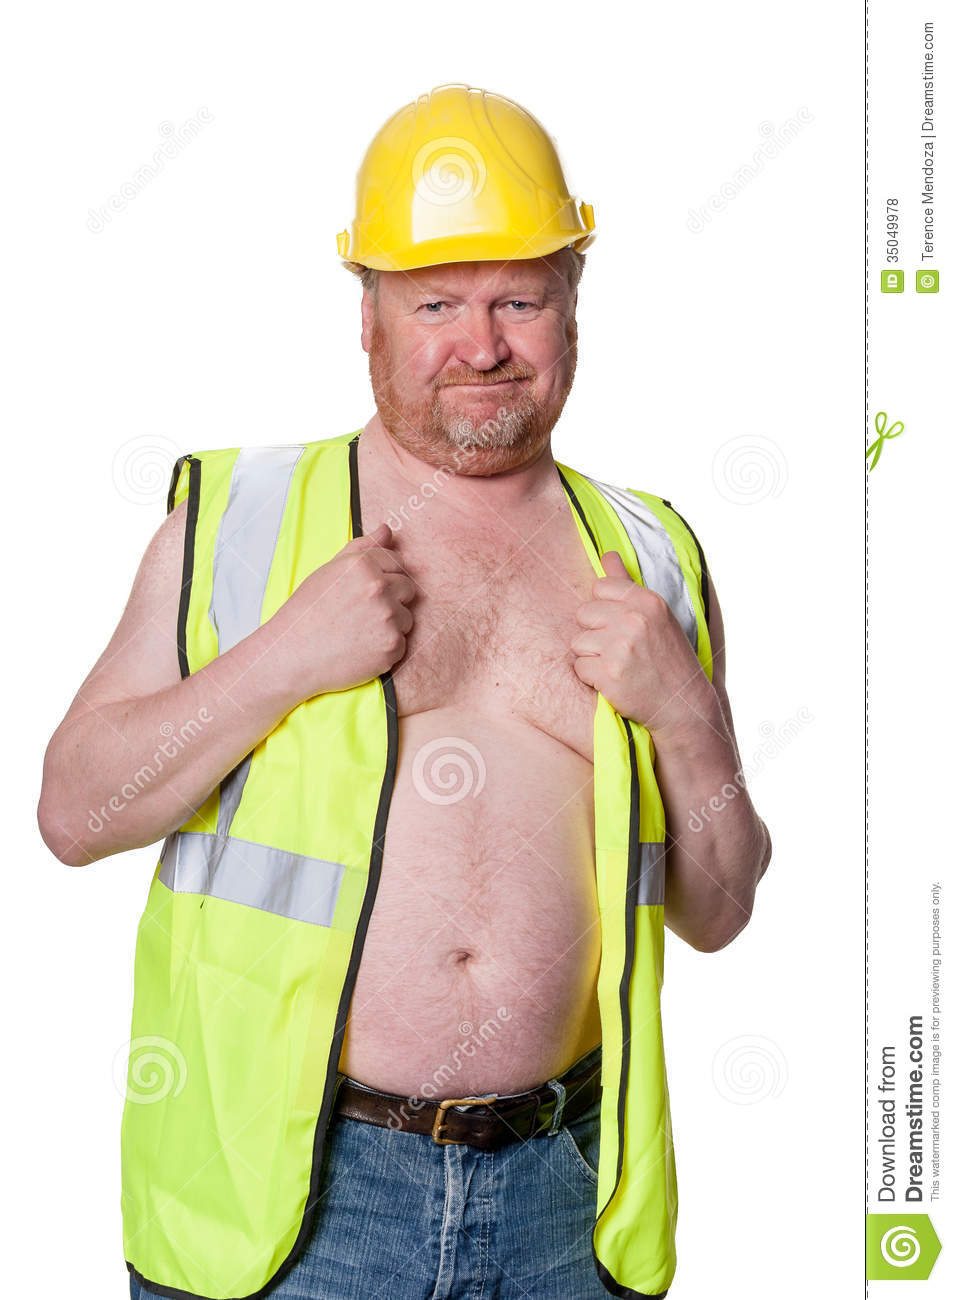 Construction Worker In Hard Hat - Isolated On White Royalty Free Stock ...